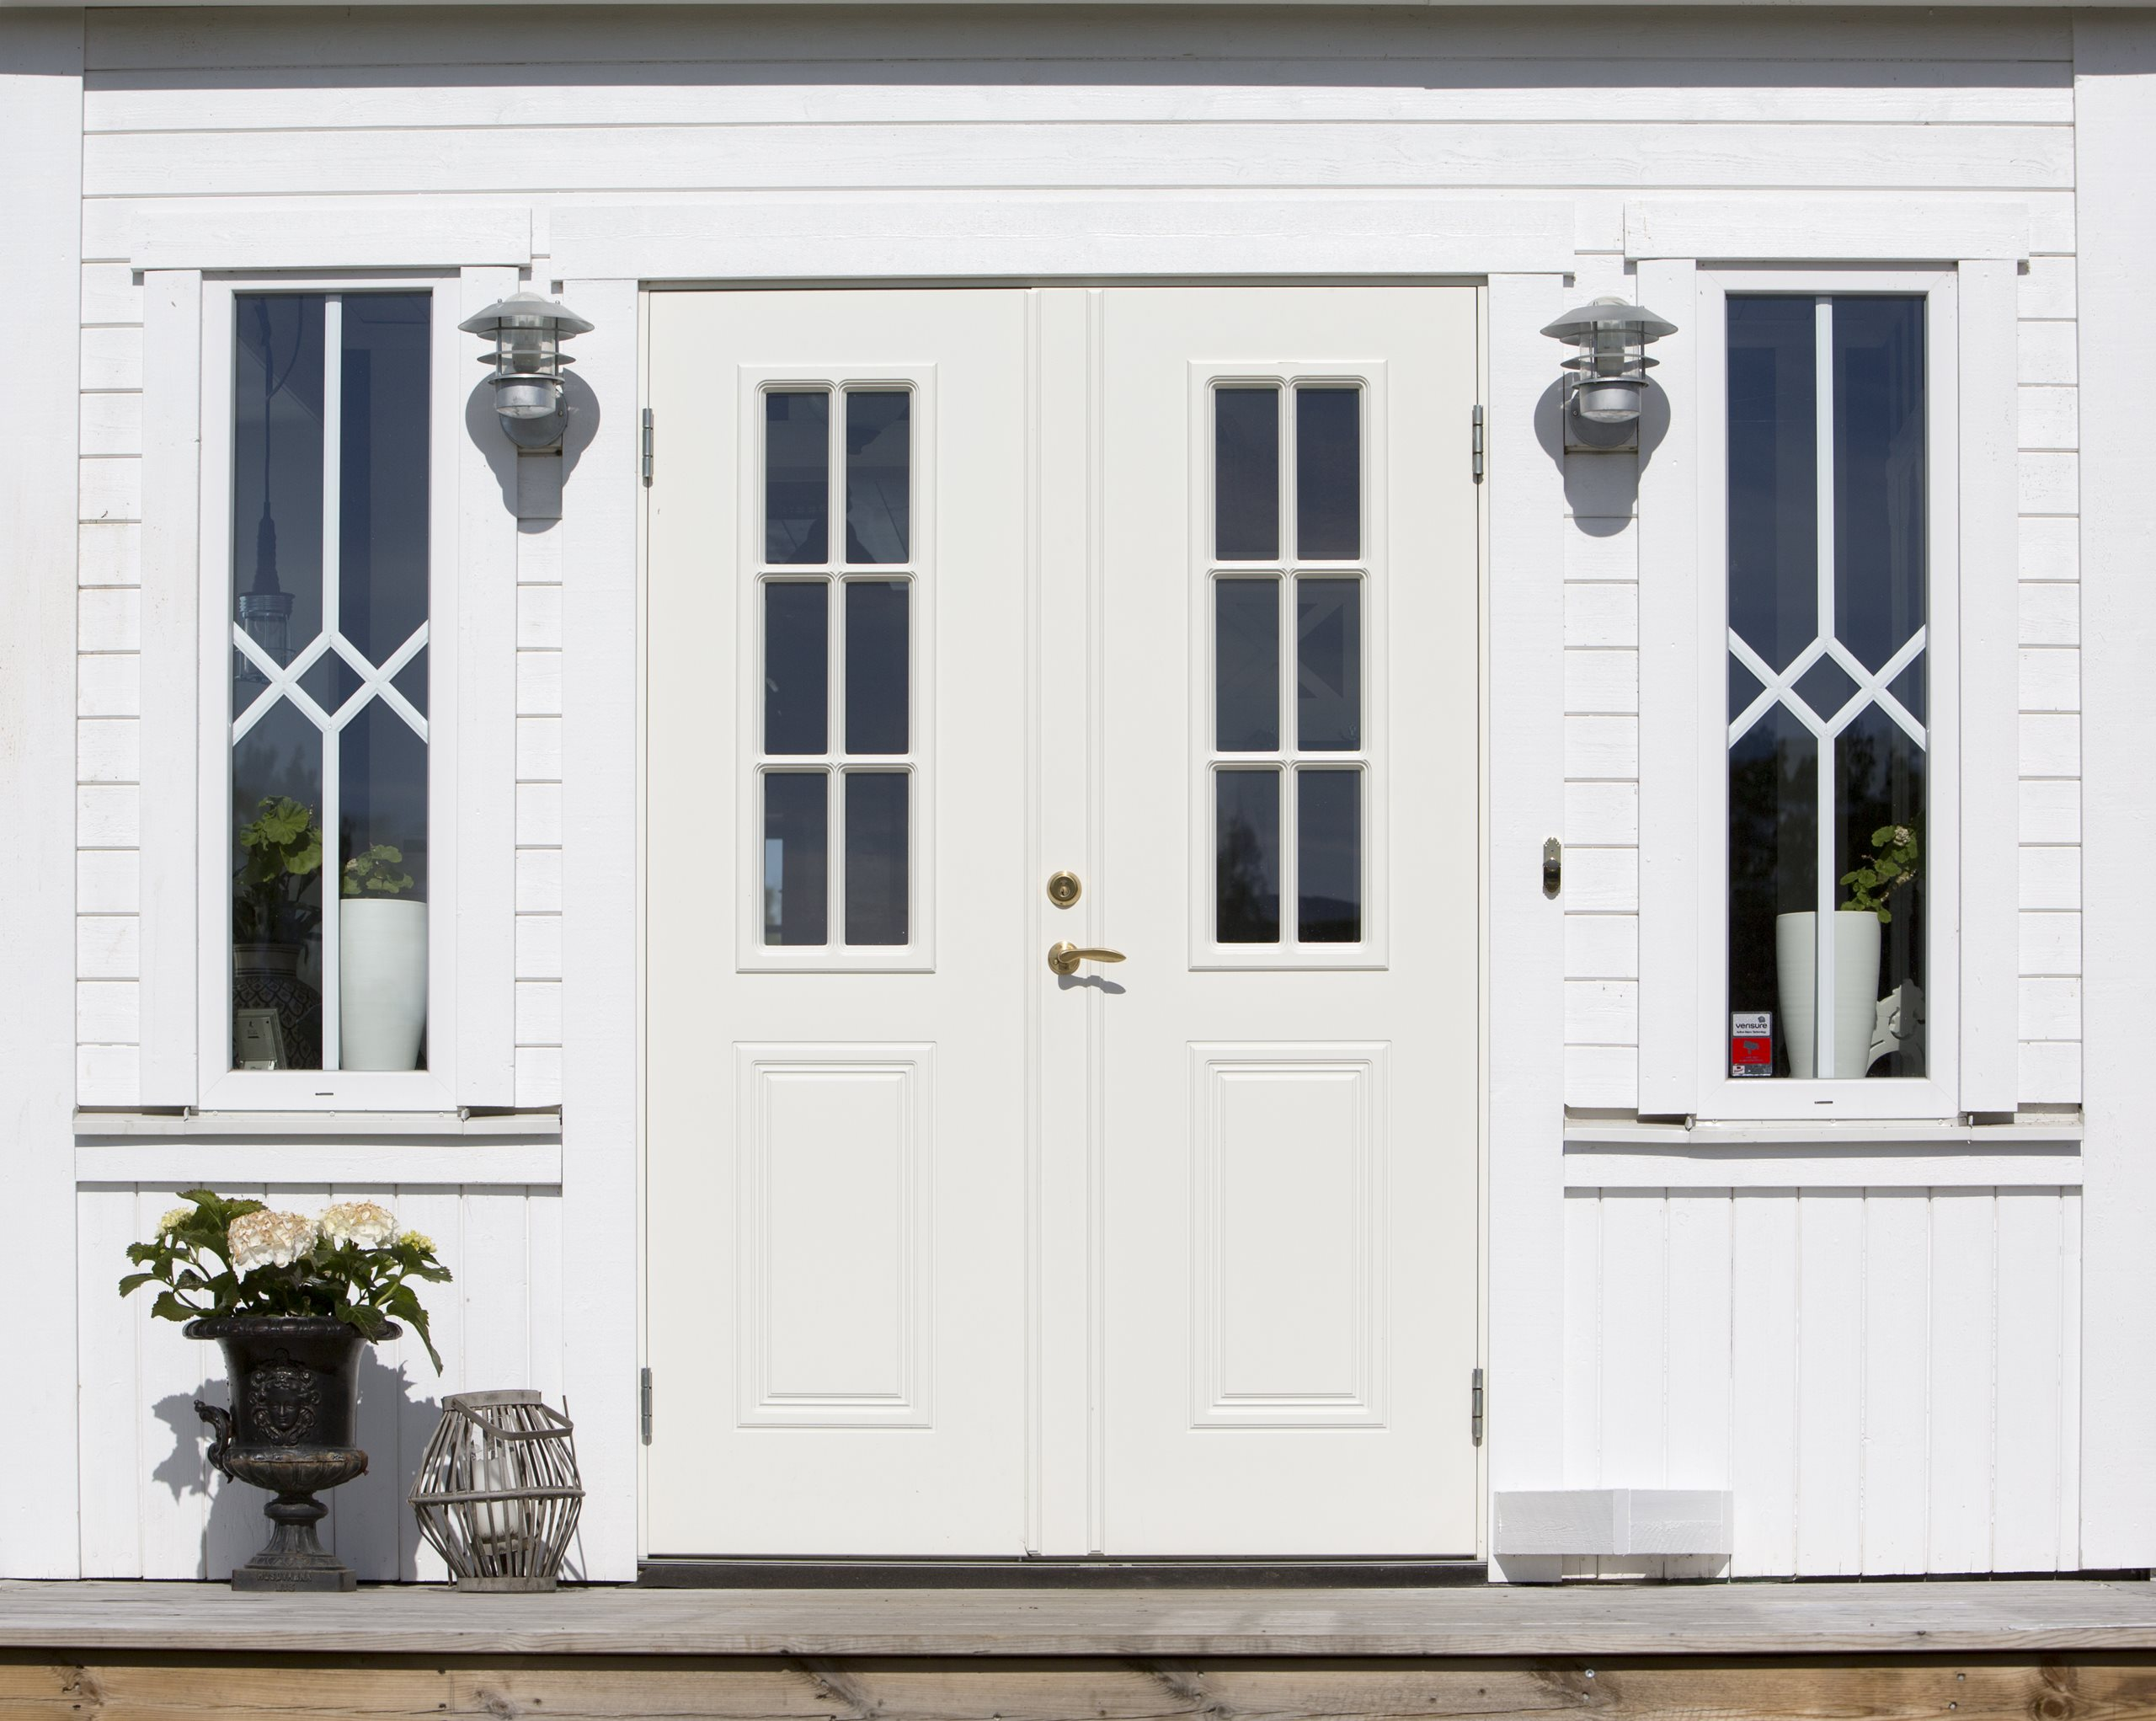 monteverdi-white-double-door-scenery-1